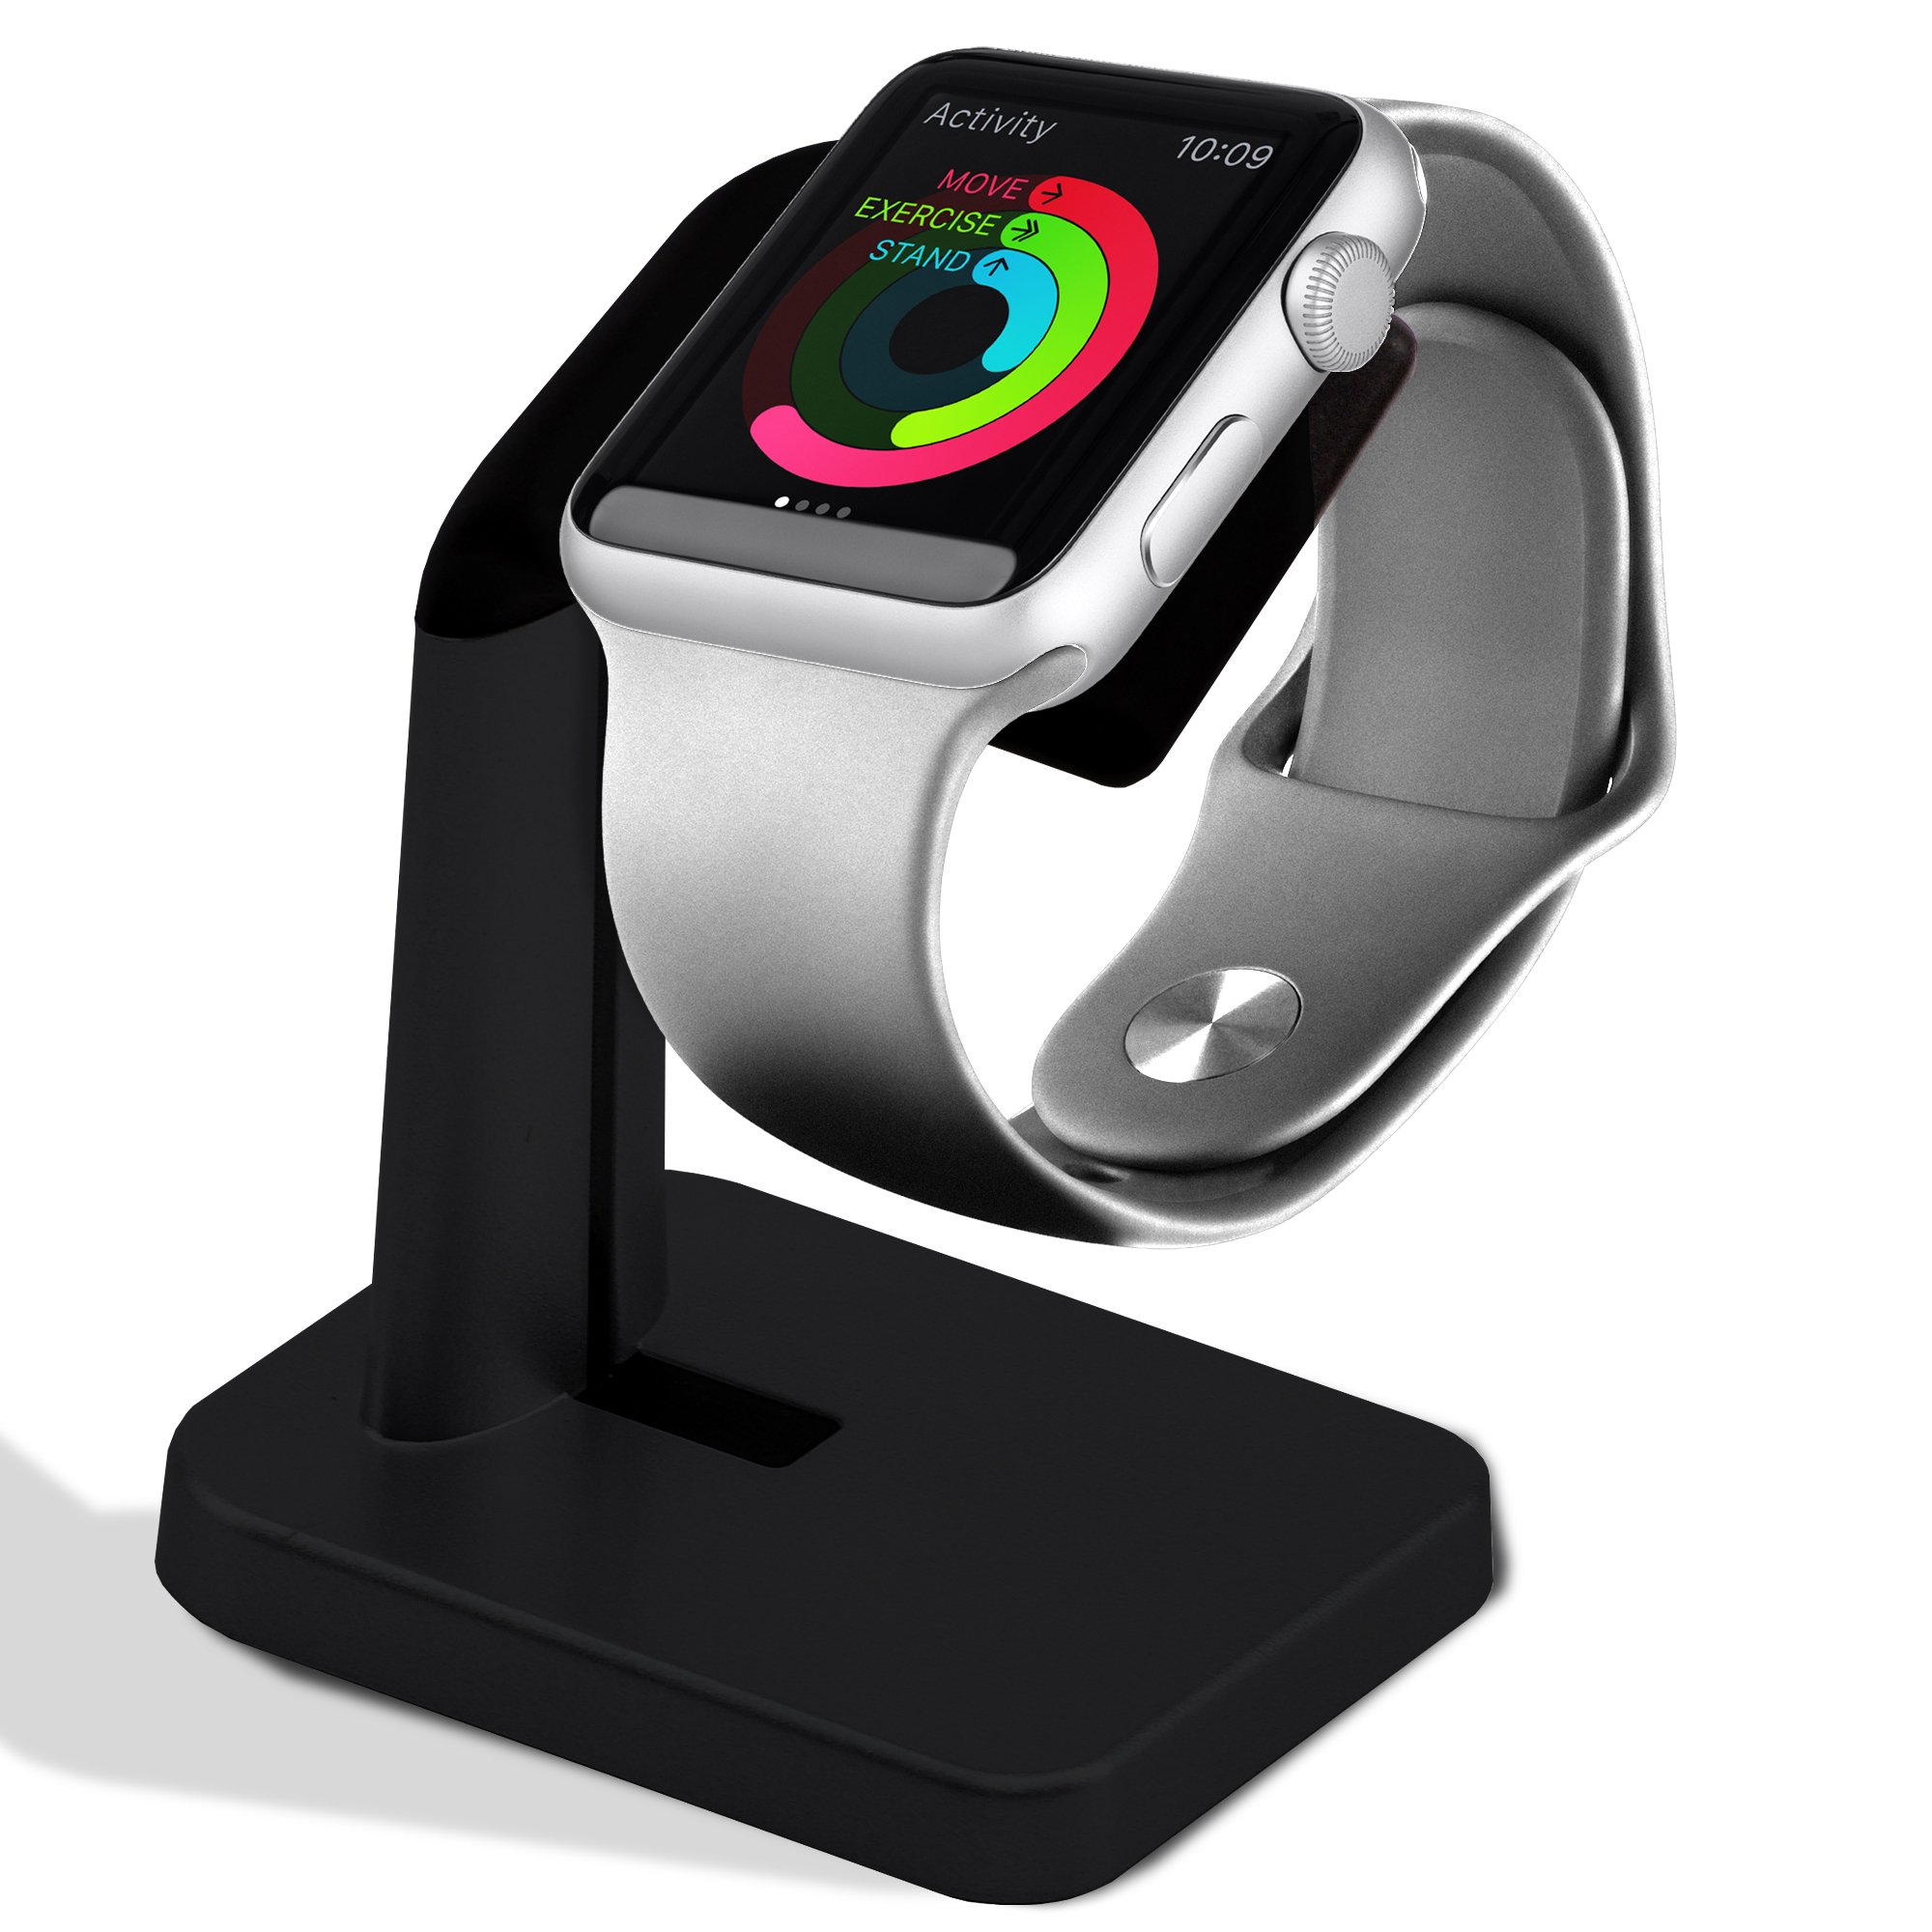 Apple iWatch Stand for charging,Dock Charge Station holder for smart watches series 38/42mm [Nightstand mode].Black color edition bracket support. Watch charger, cable not included. Antislip platform.